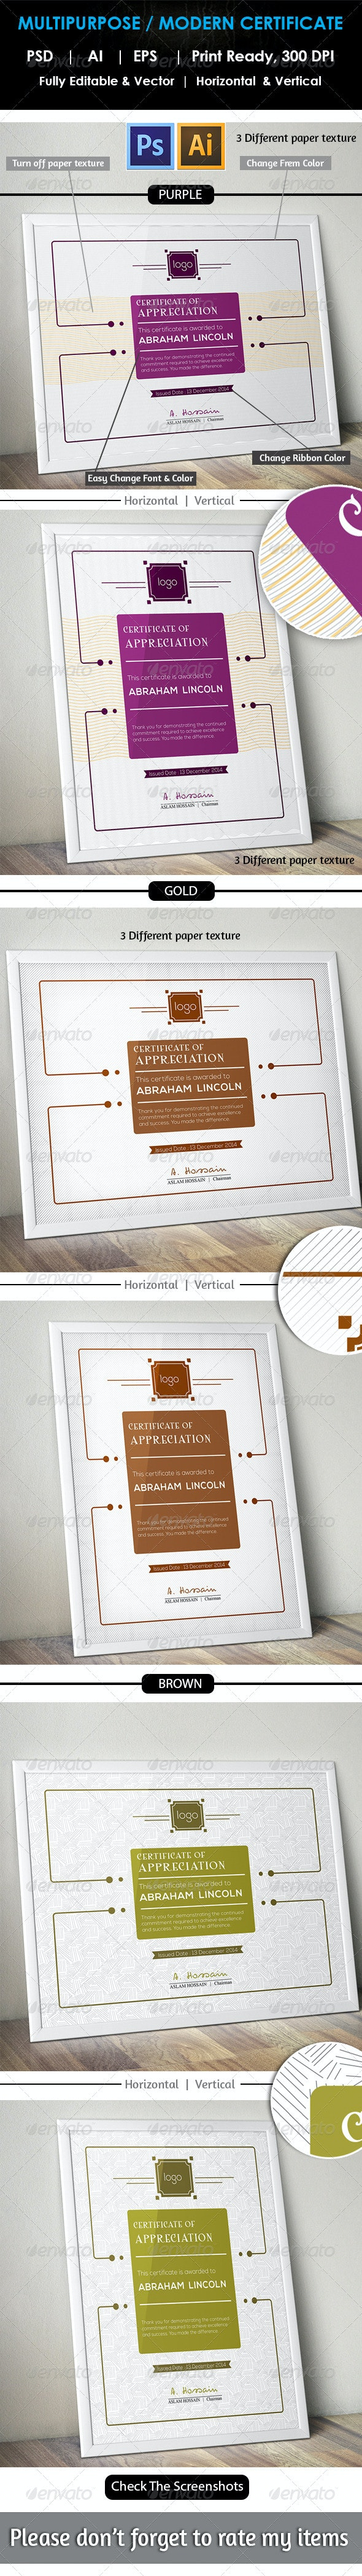 Modern Multipurpose Certificate GD011 - Certificates Stationery